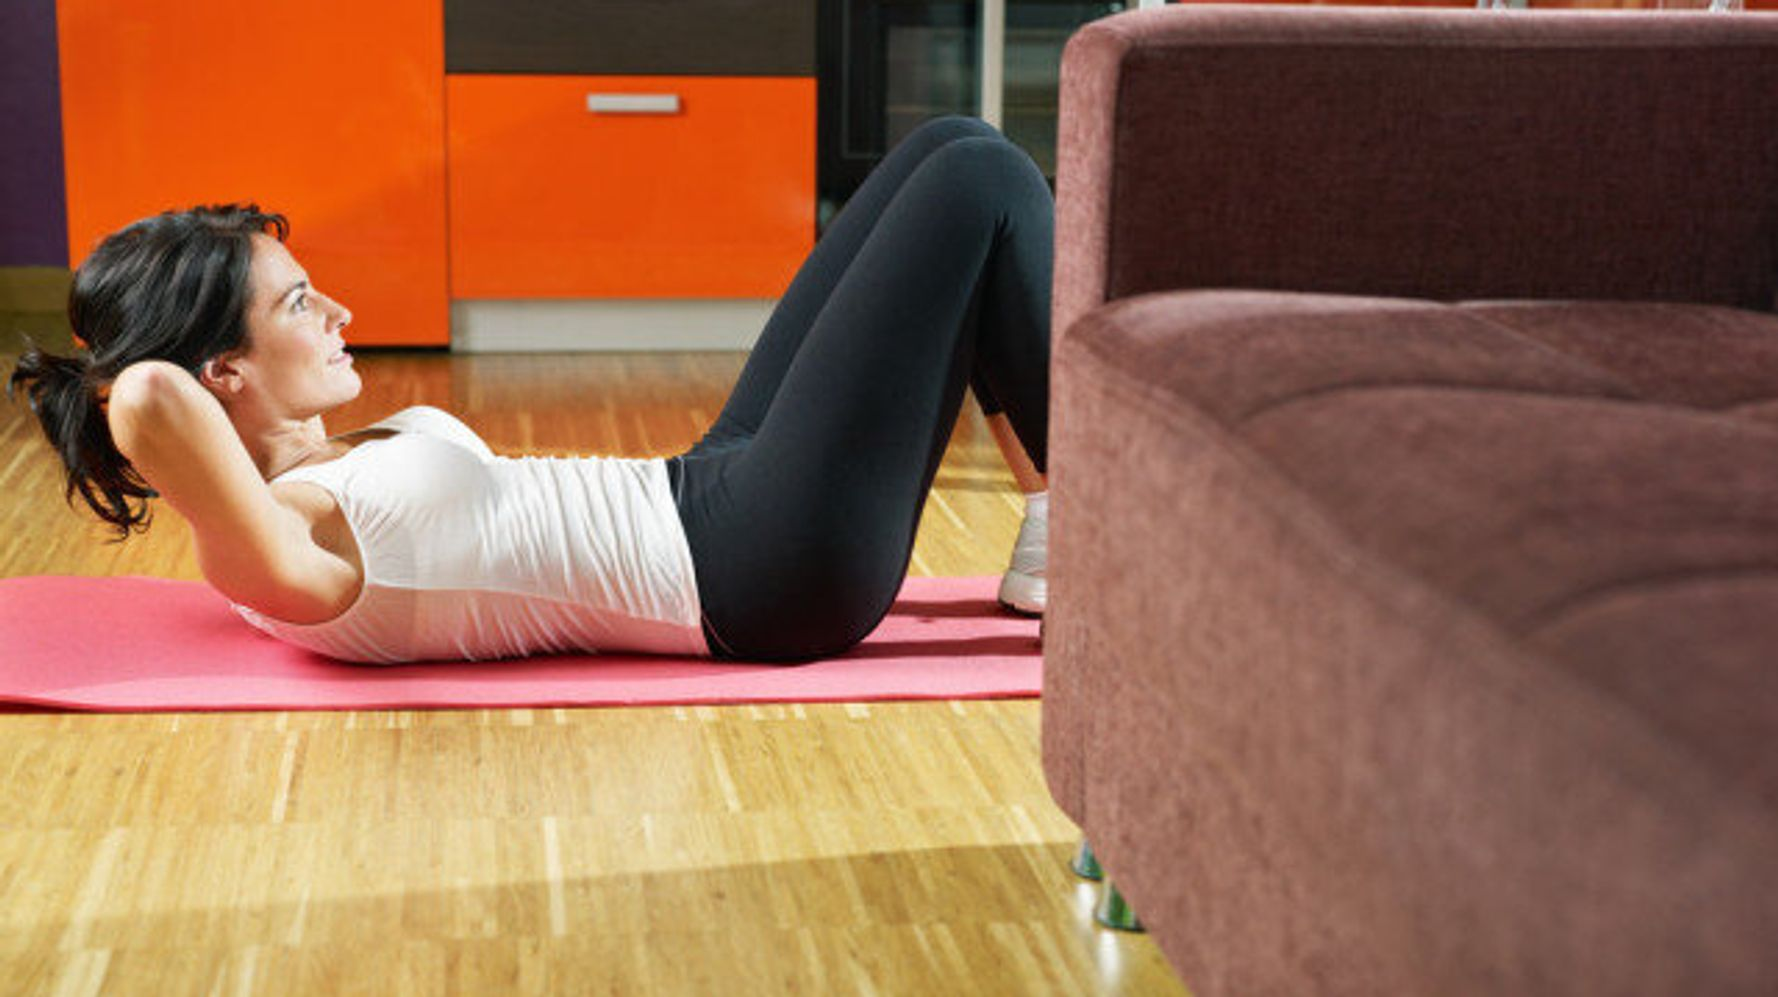 An At-Home Workout for When You Just Dont Want to Leave